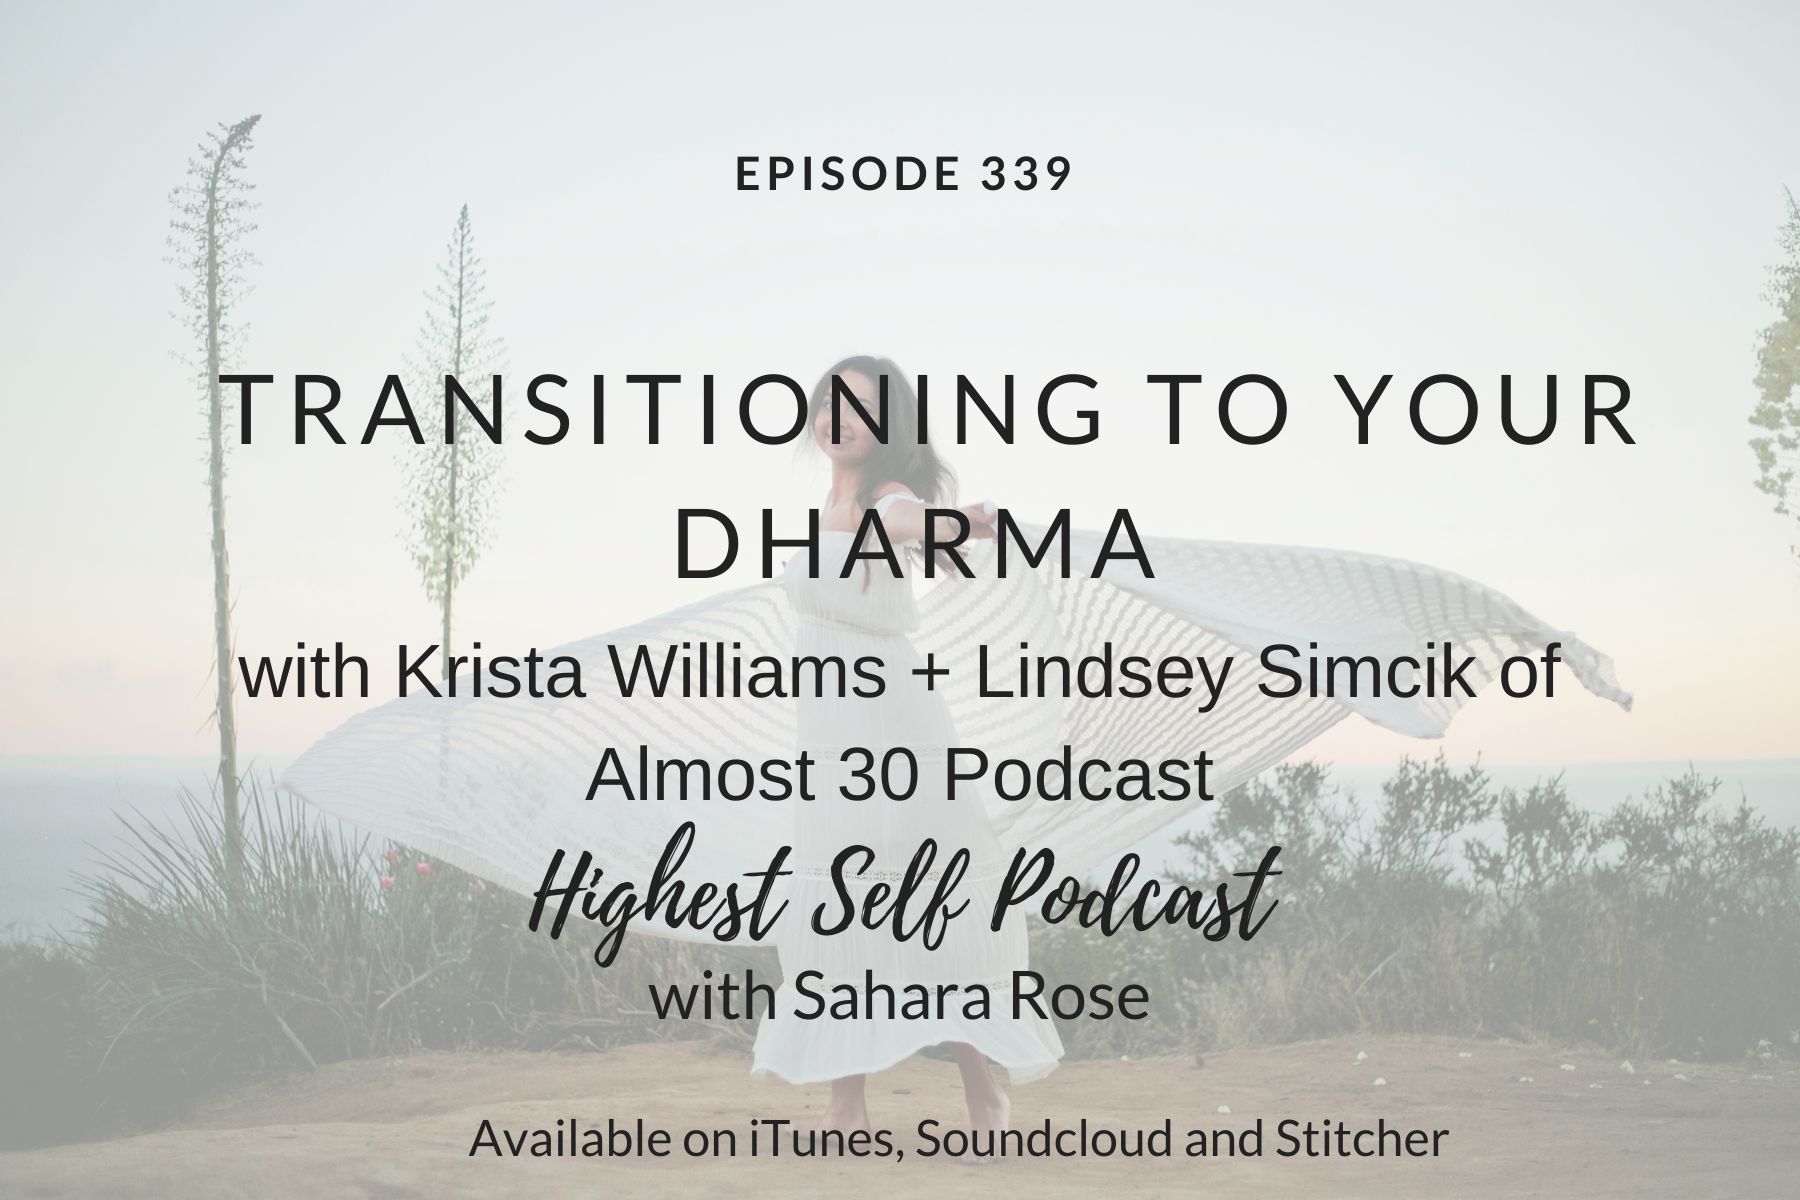 Transitioning to Your Dharma